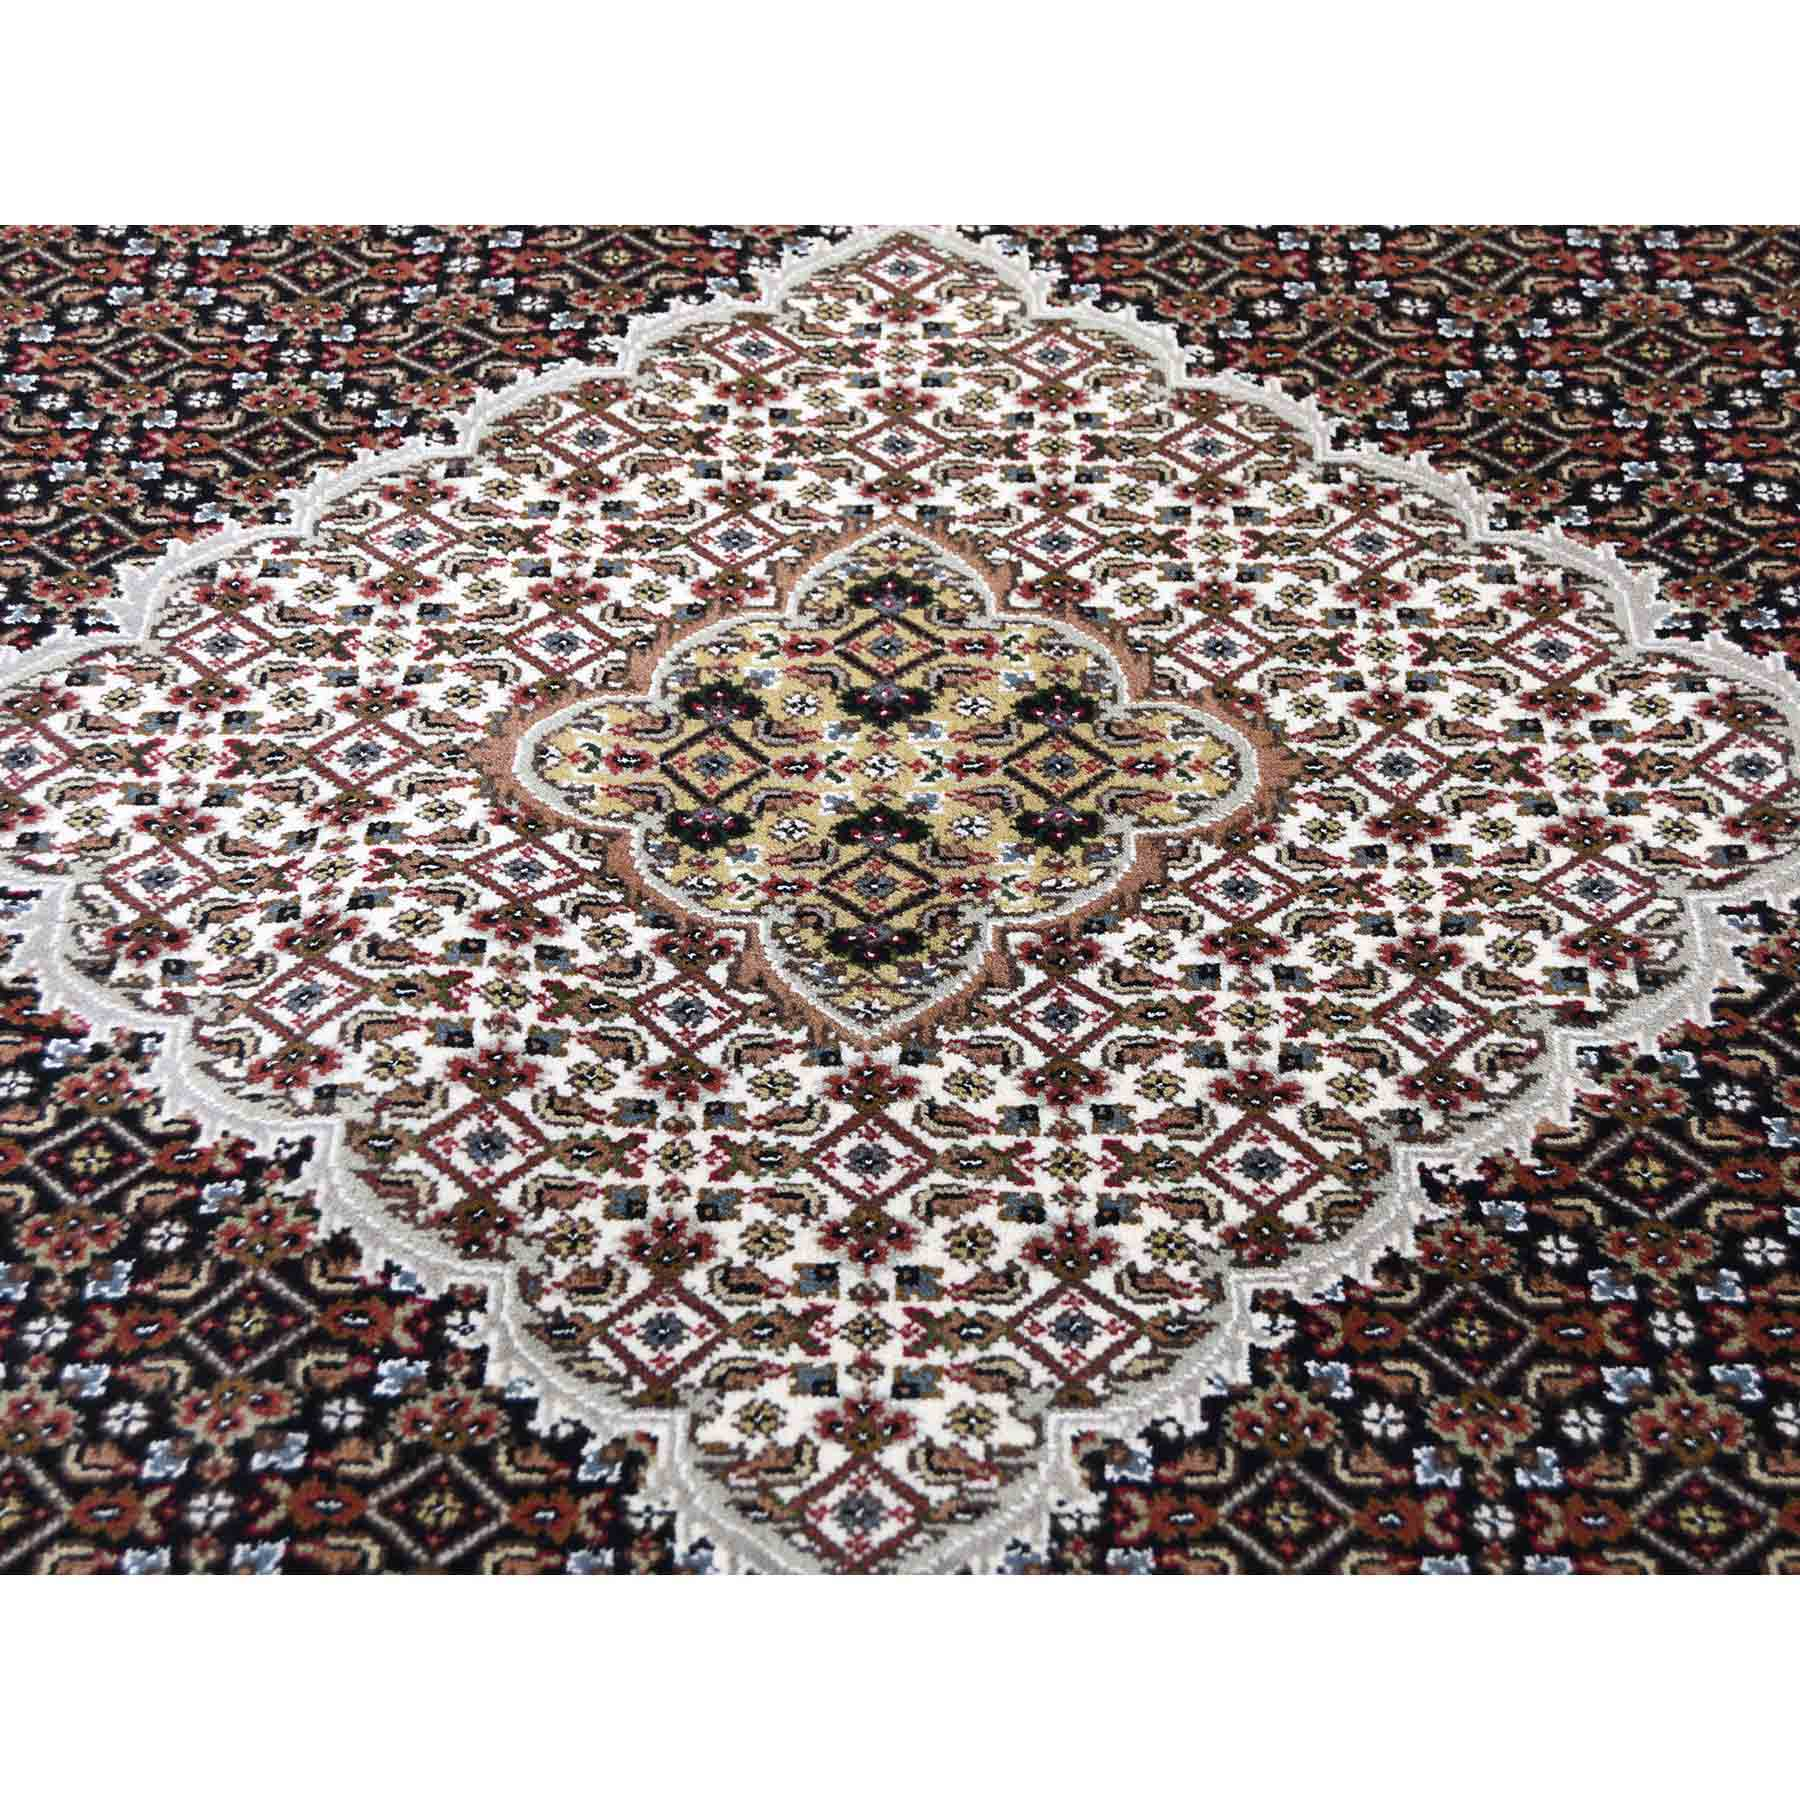 Fine-Oriental-Hand-Knotted-Rug-225095